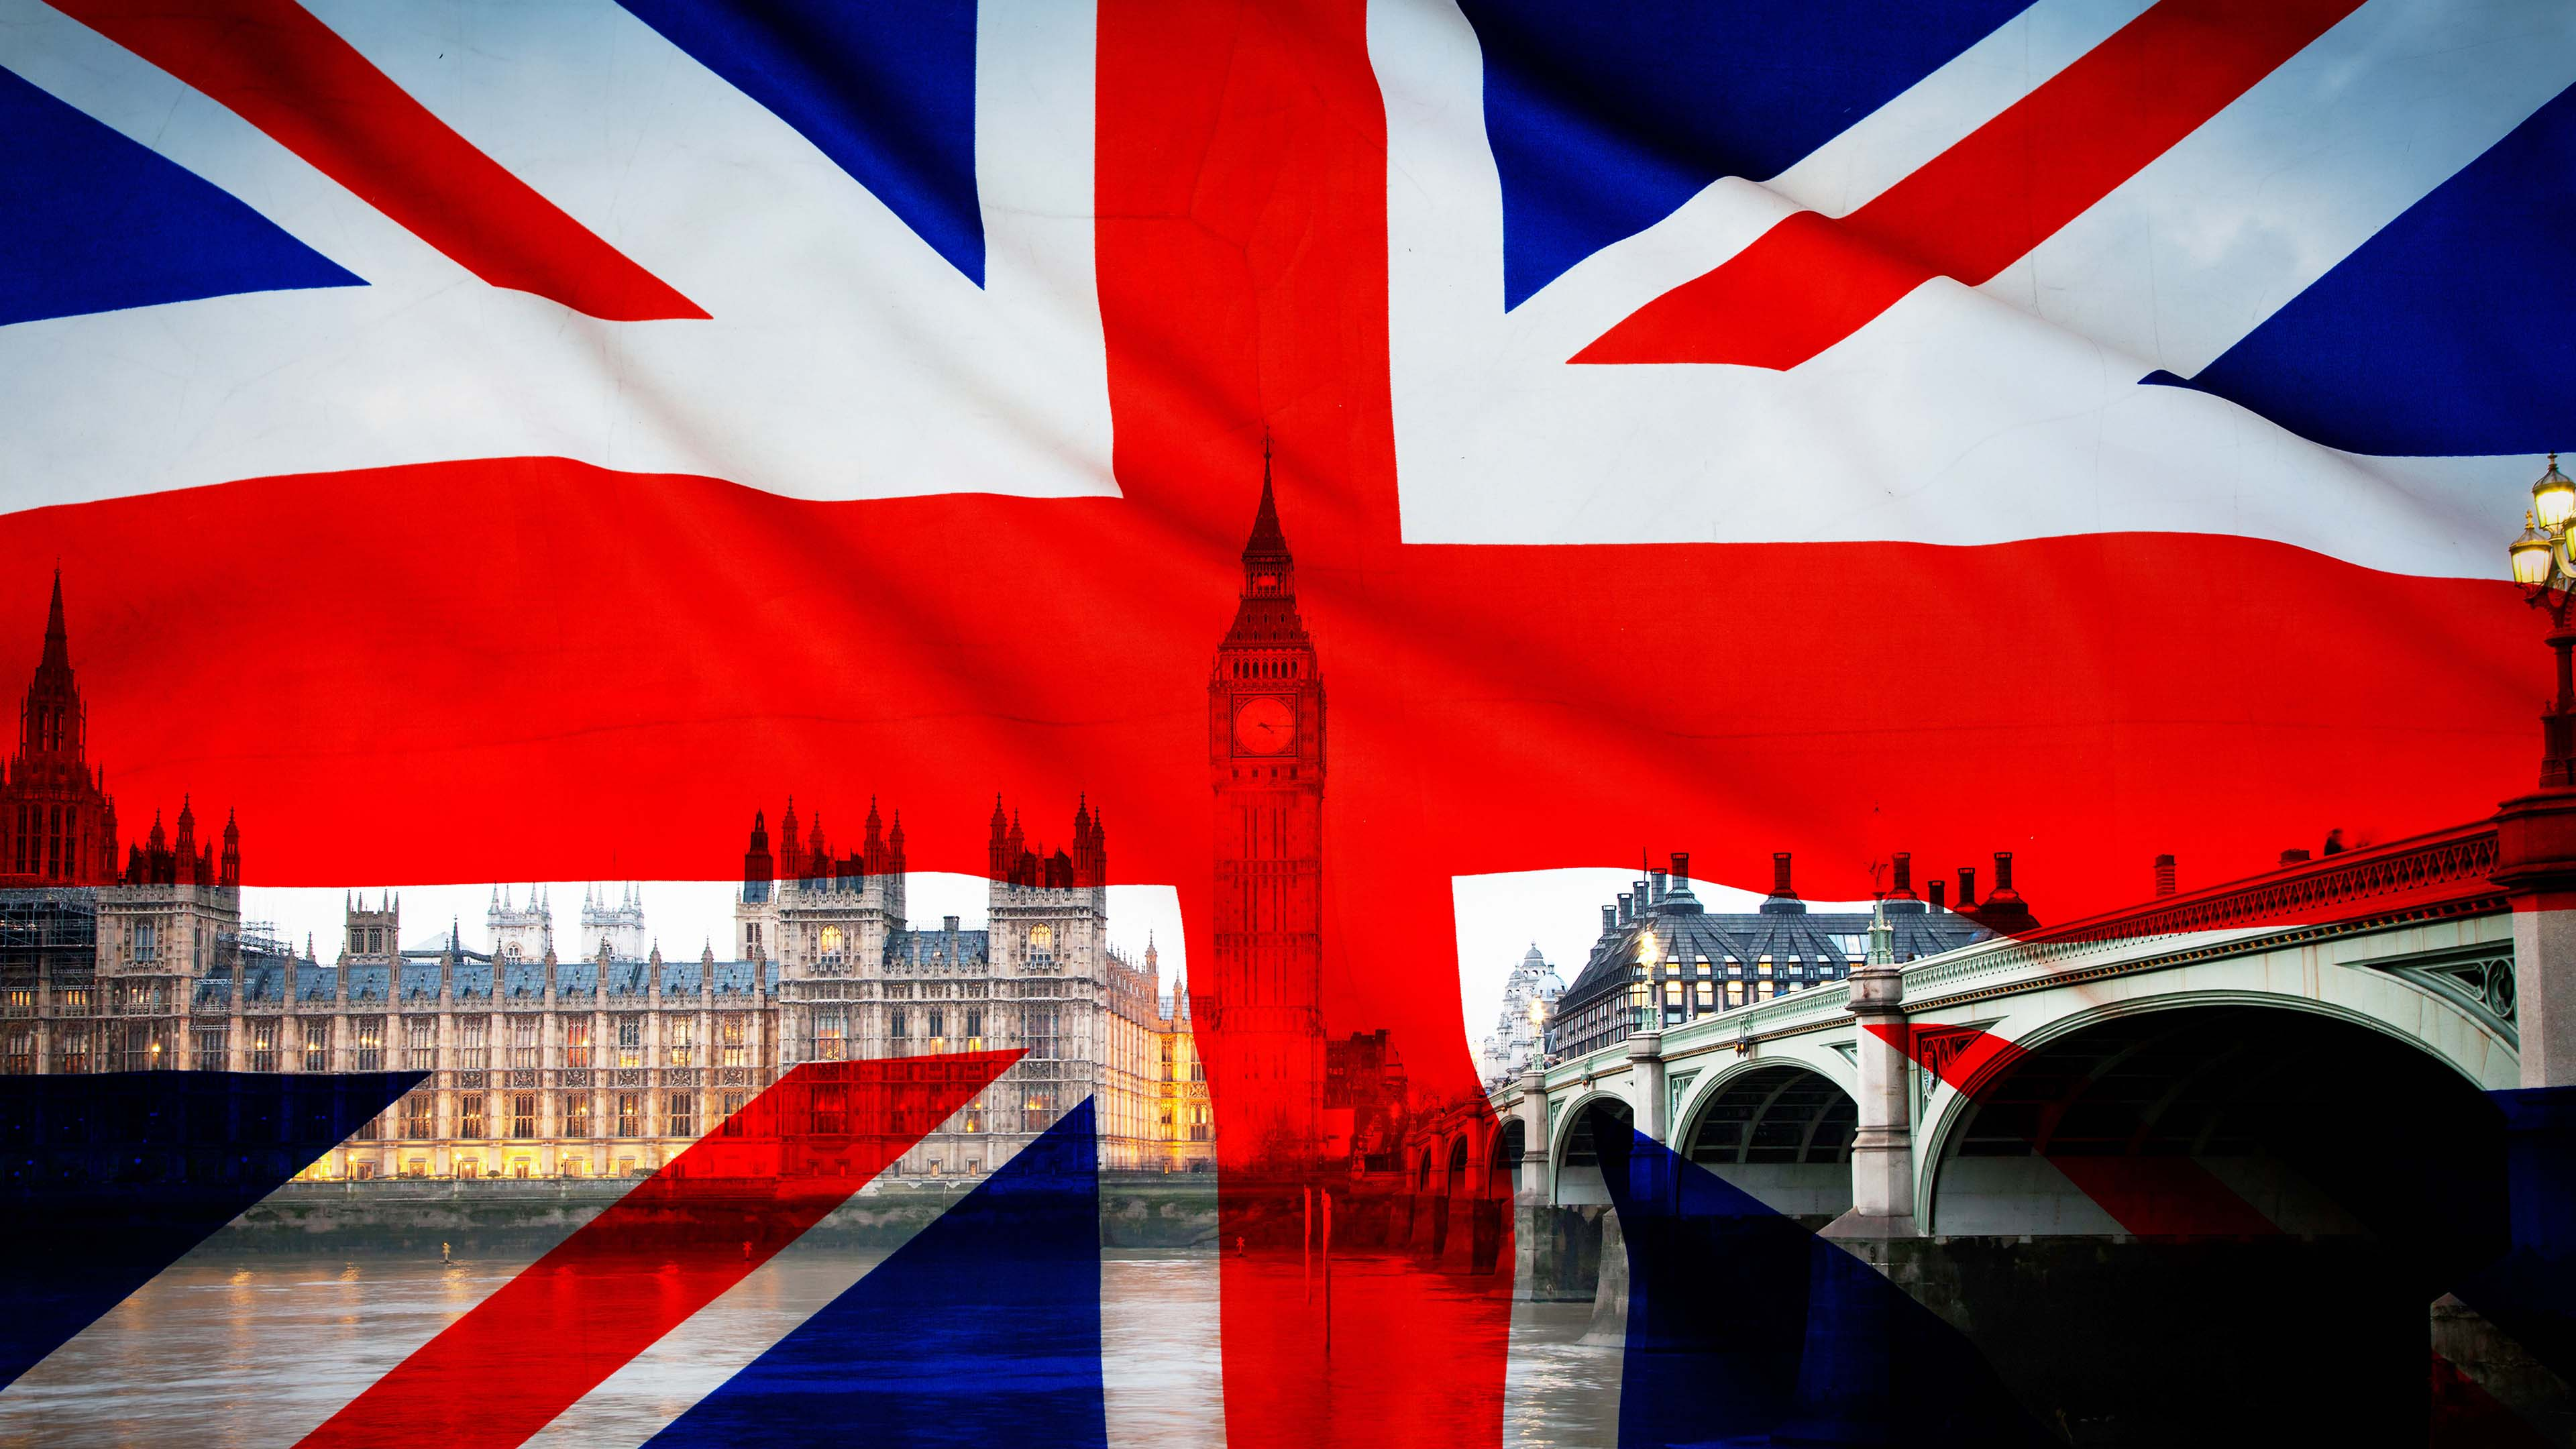 britain flag high resolution flag free wallpapers